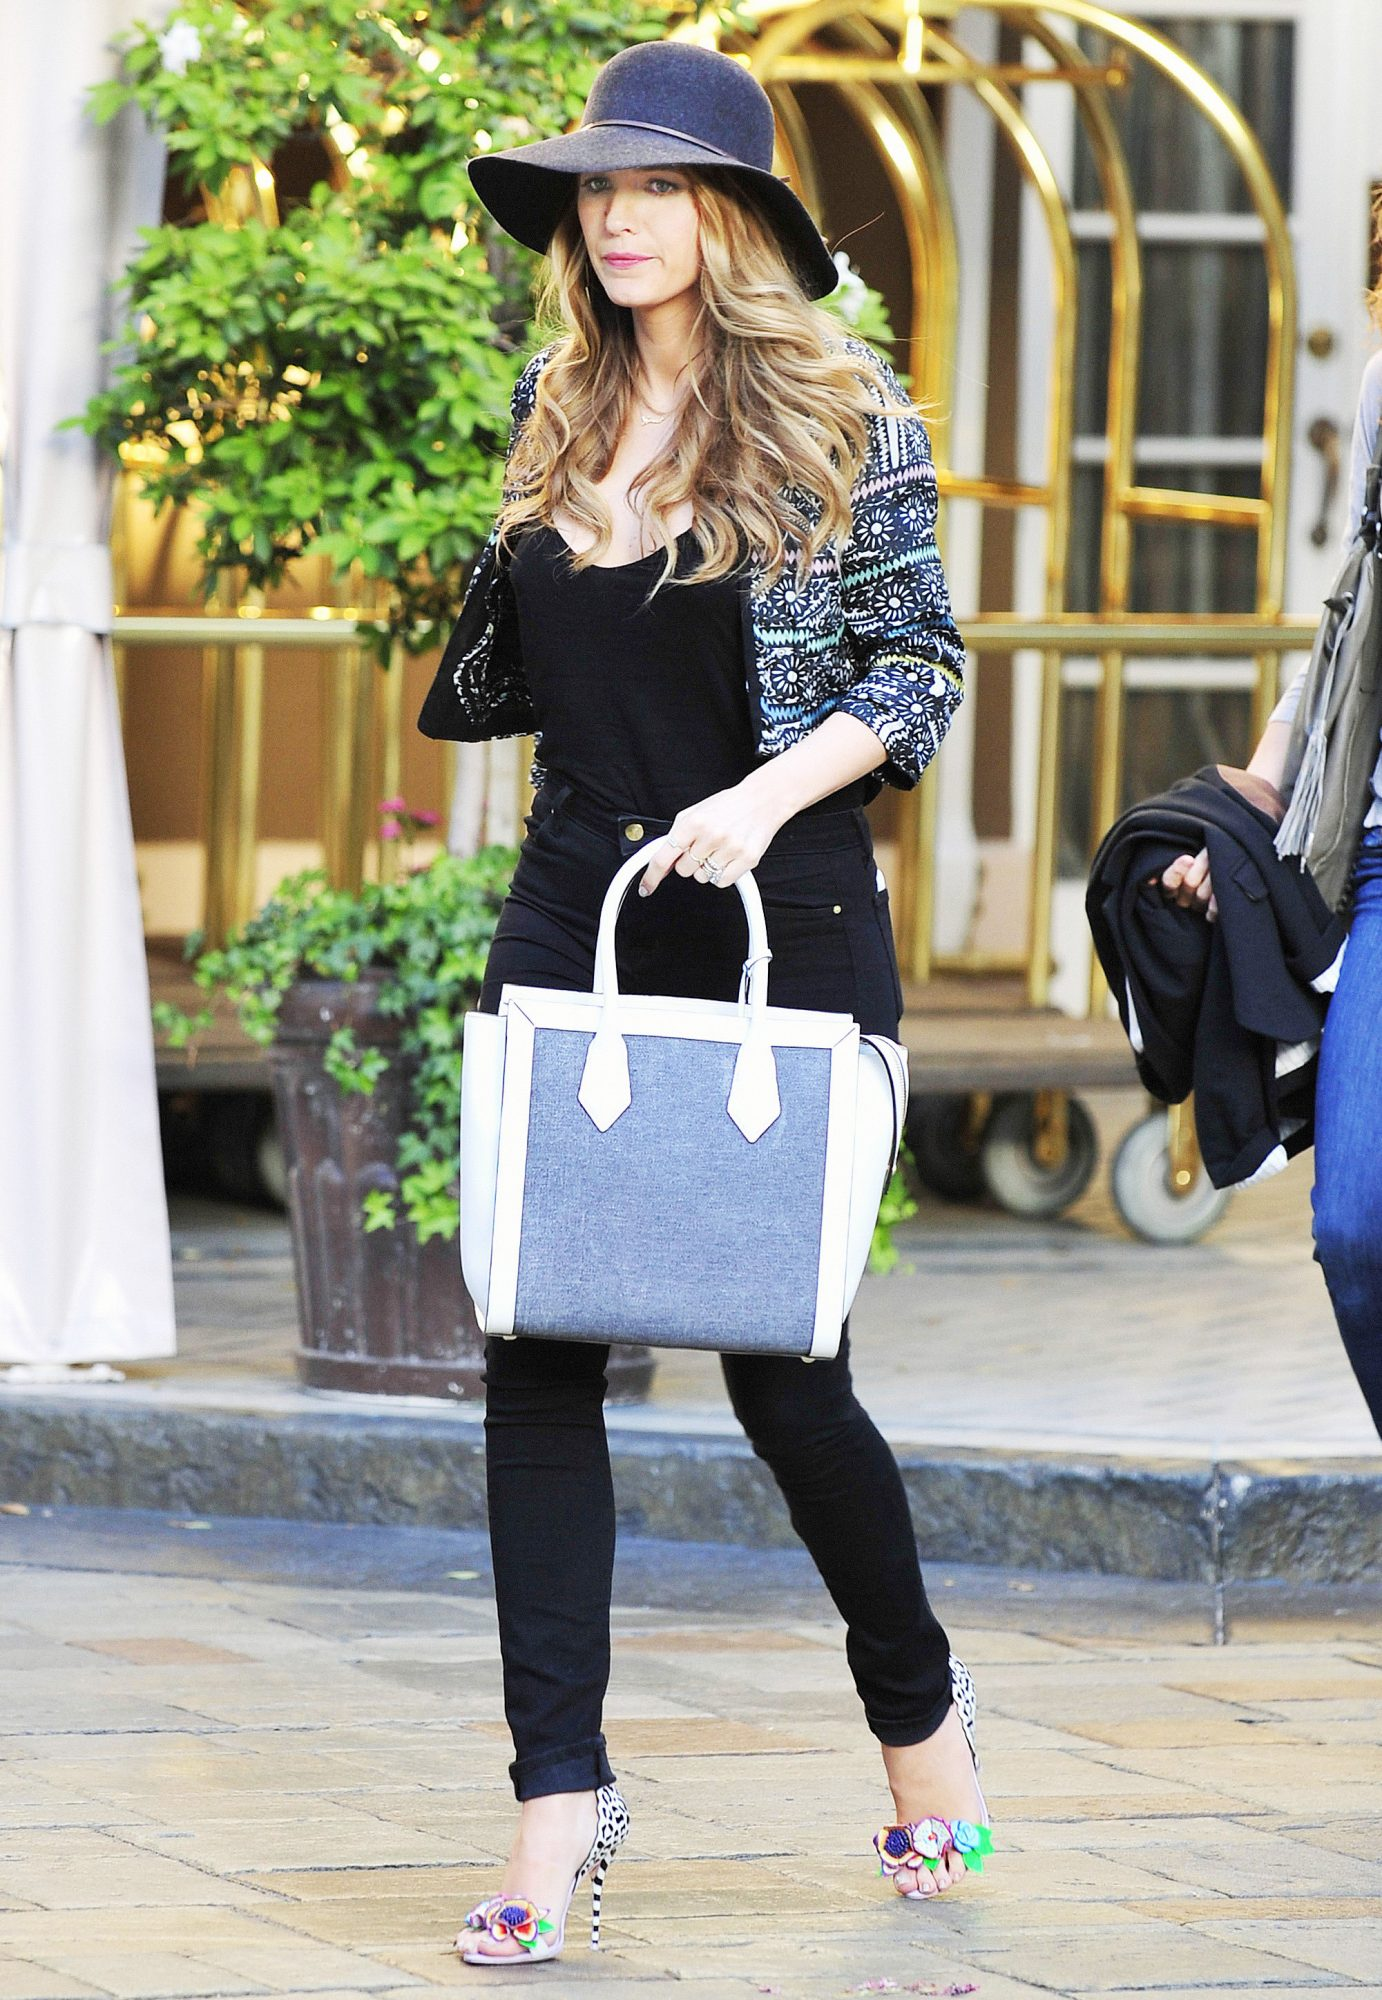 Blake Lively Leaving a Meeting at Her Hotel